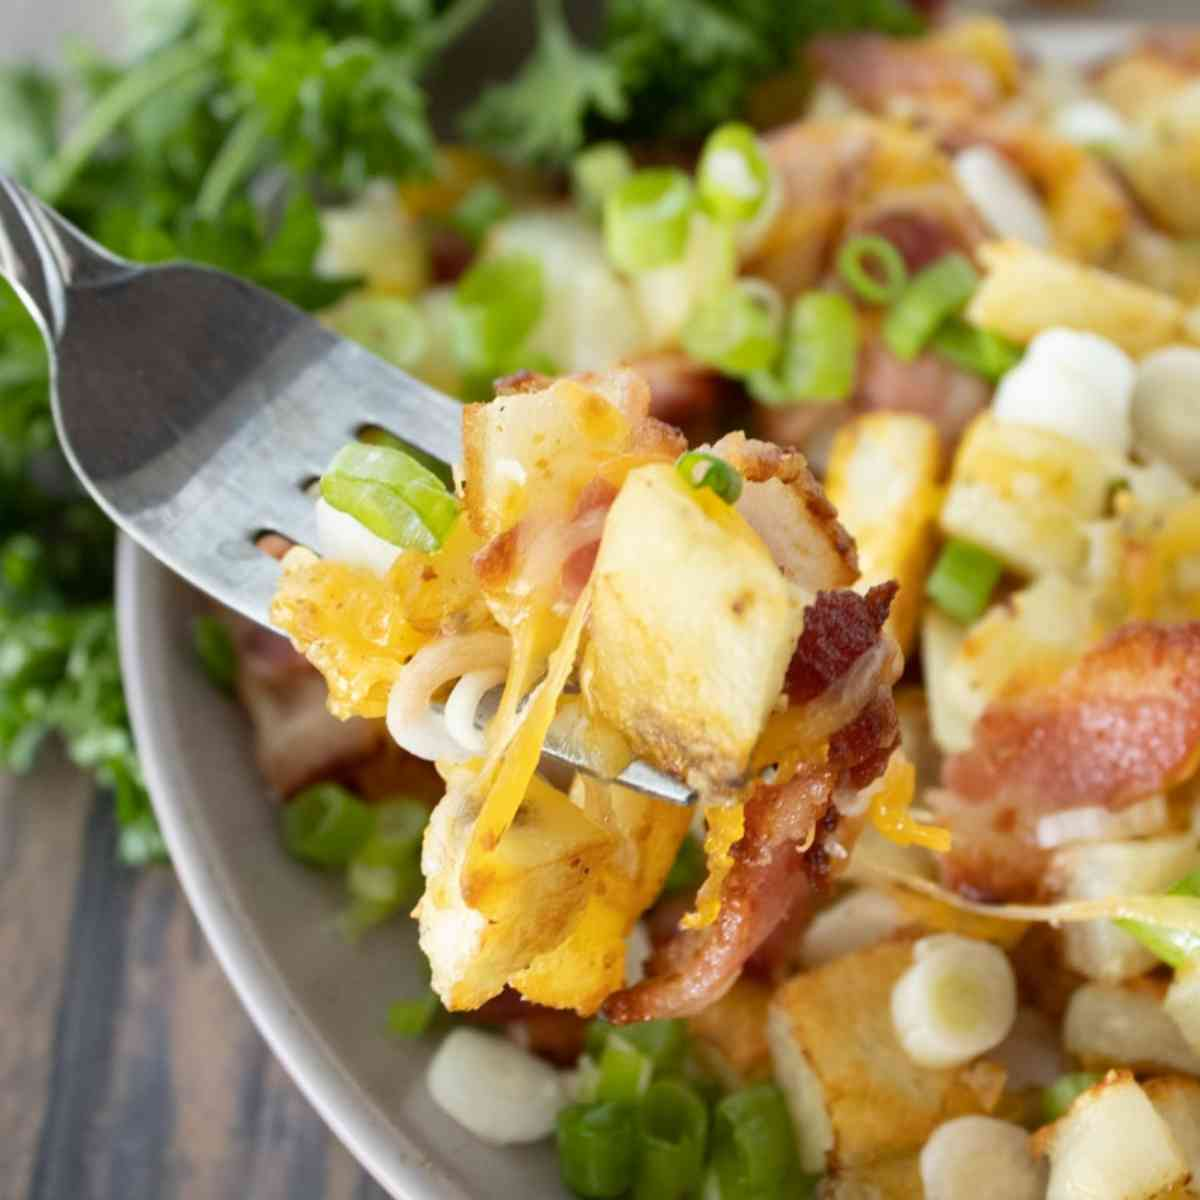 Forkful of crispy potatoes covered in bacon and cheese.